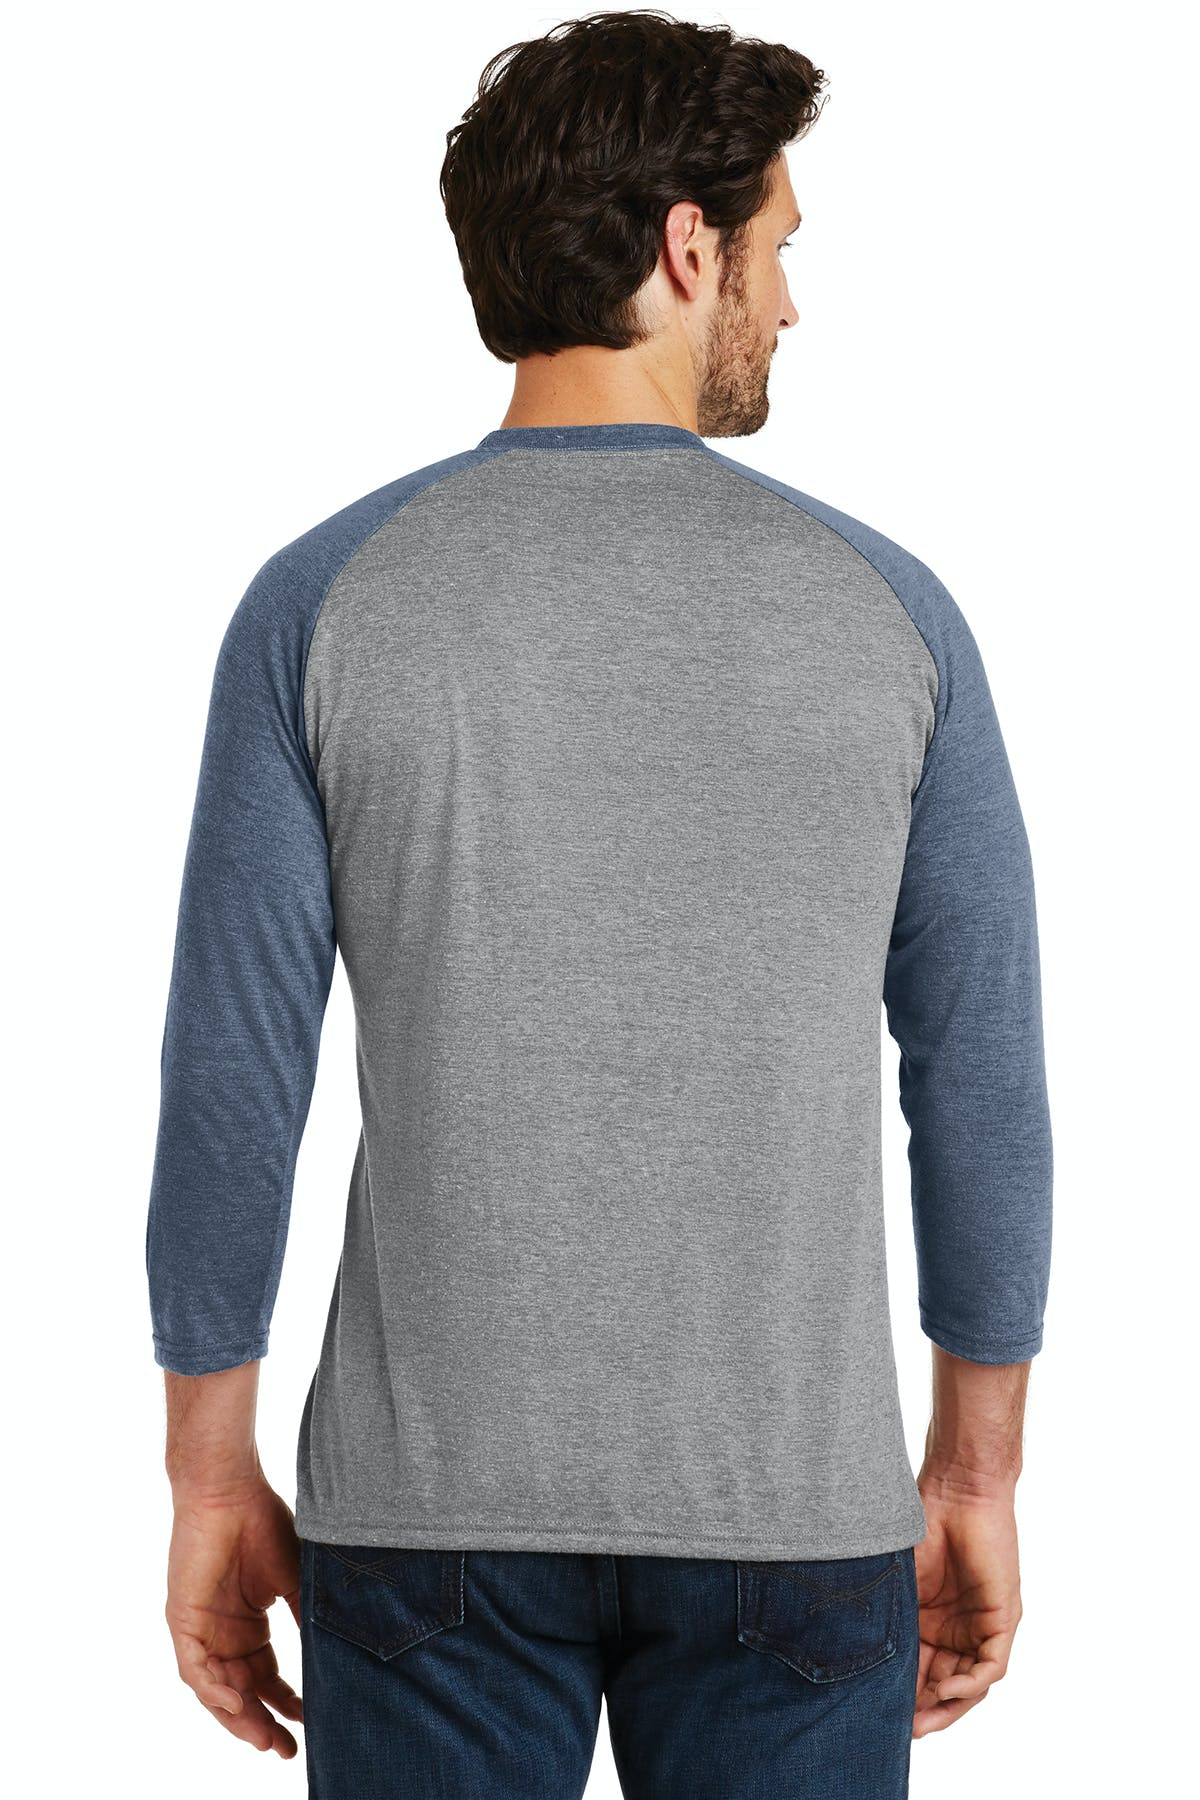 District Made® Mens Perfect Tri® 3/4-Sleeve Raglan - sold by PRINT CITY GRAPHICS, INC